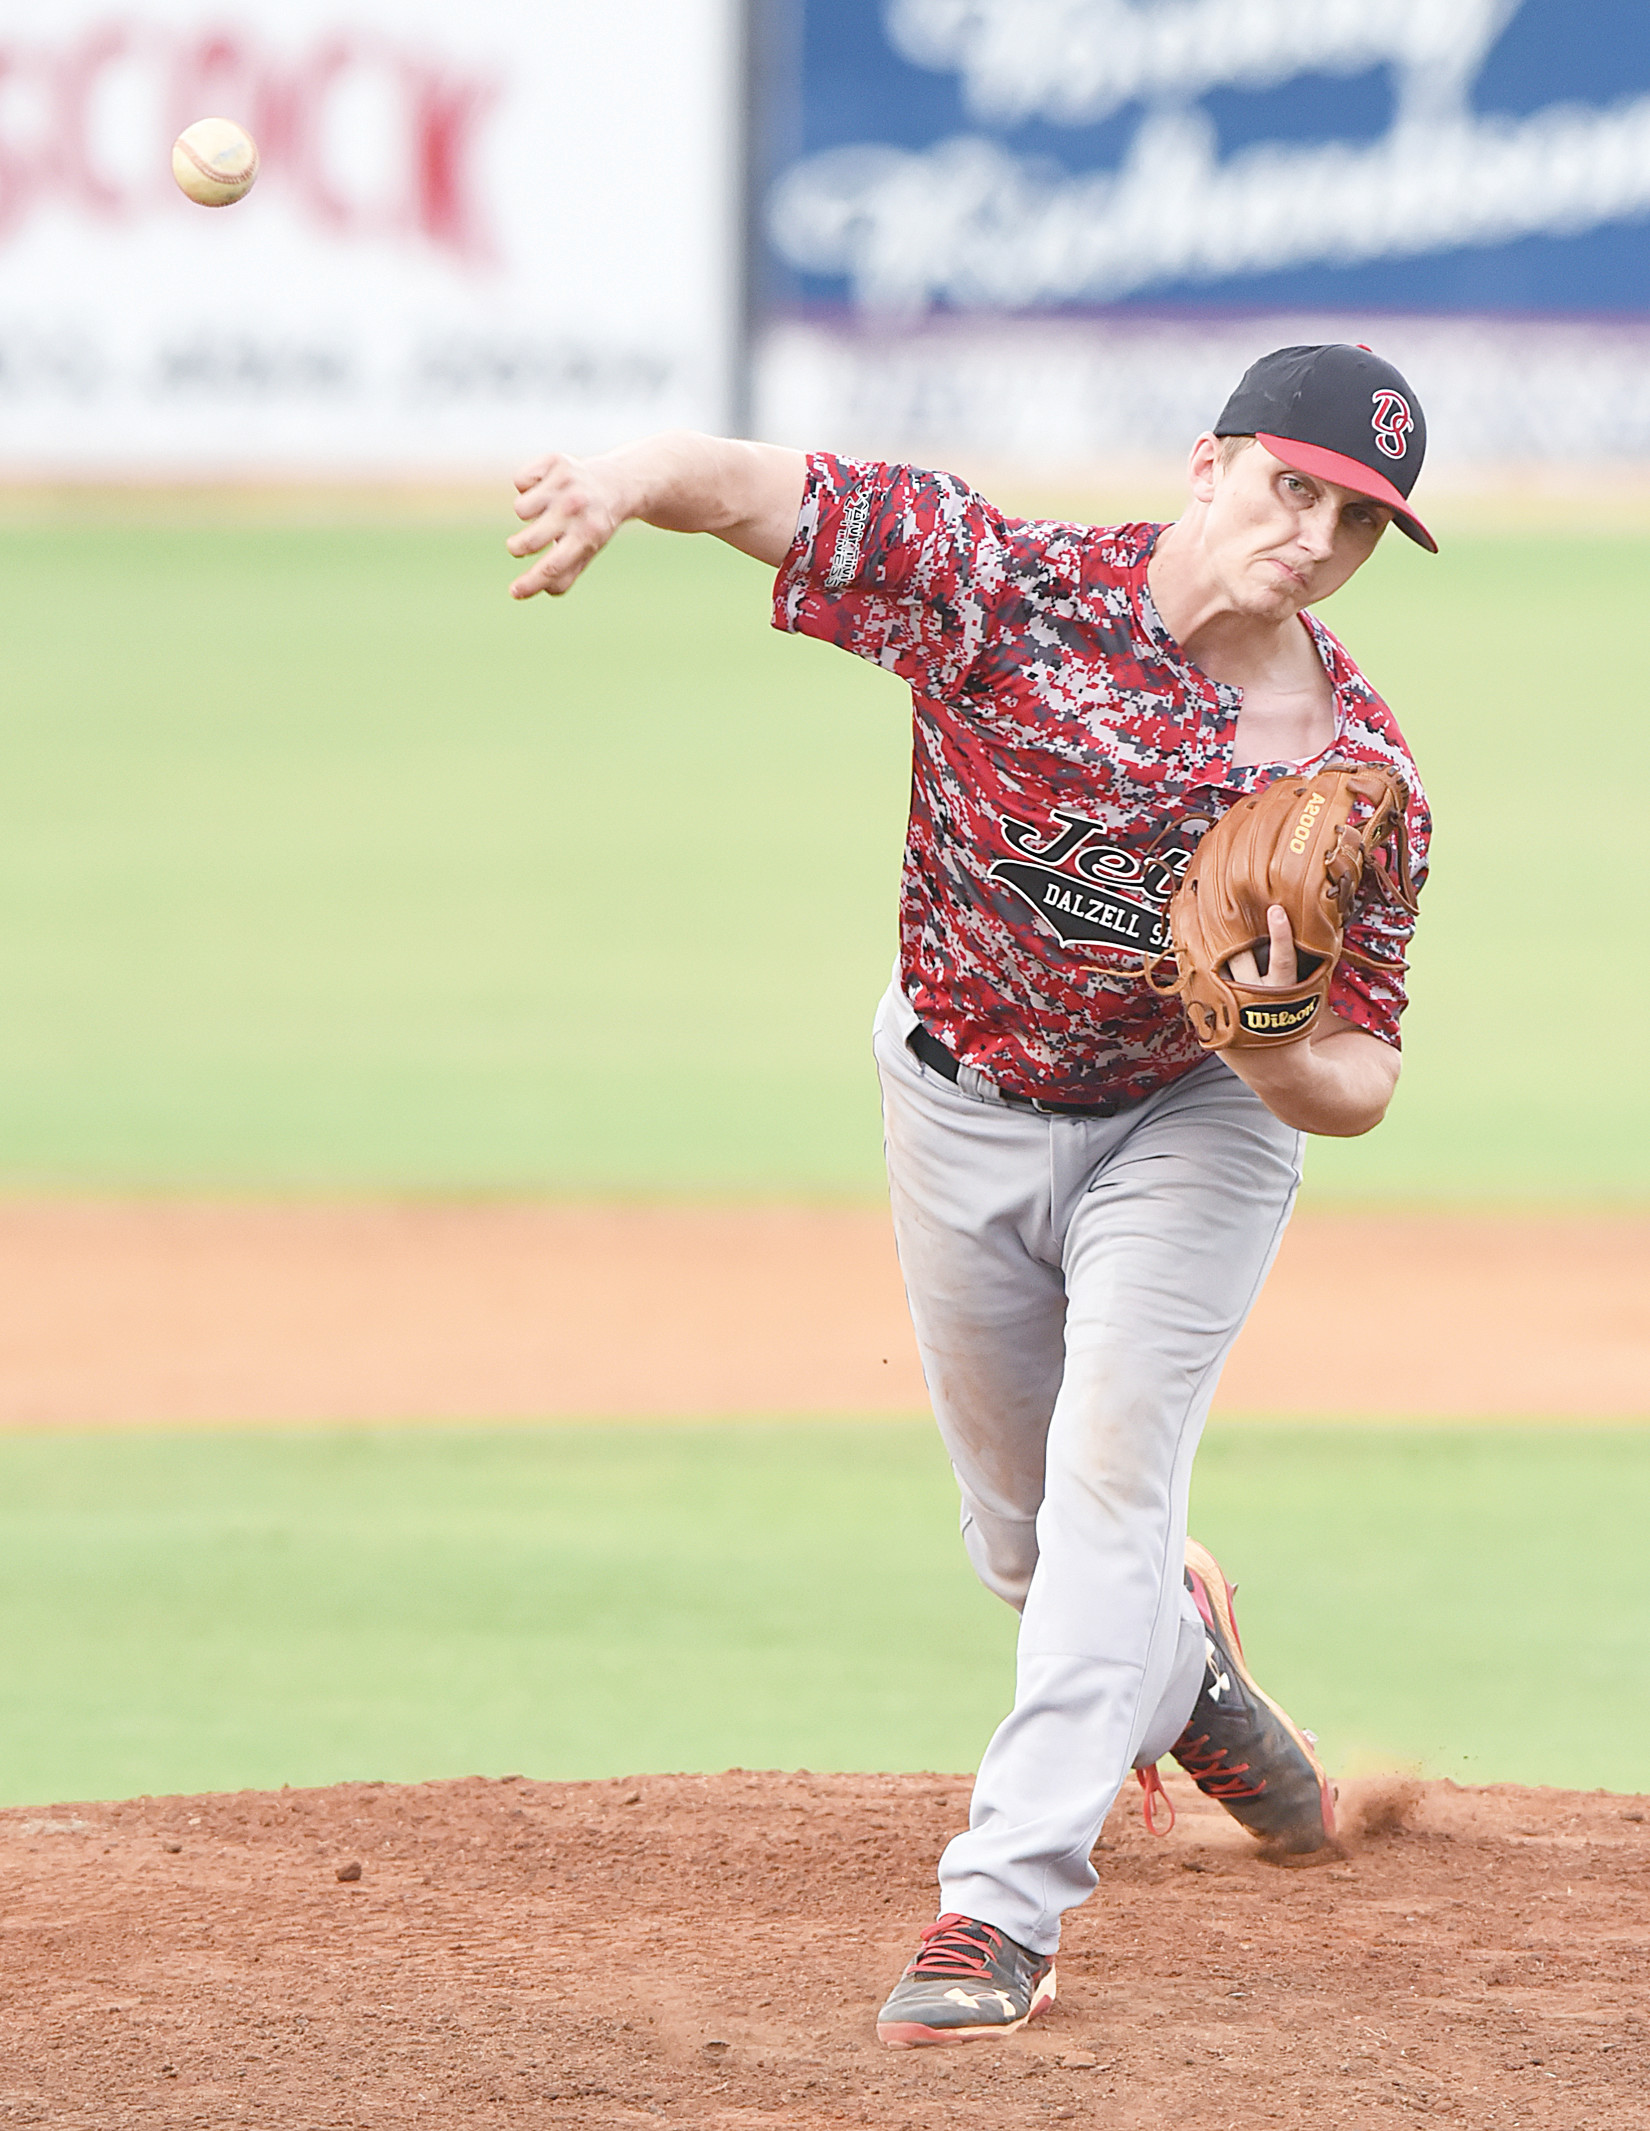 Dalzell-Shaw starting pitcher Josh Whitley tossed a 1-hit shutout in five innings on Thursday as the Jets defeated Sumter 3-0 in a rain-shortened contest at Riley Park.